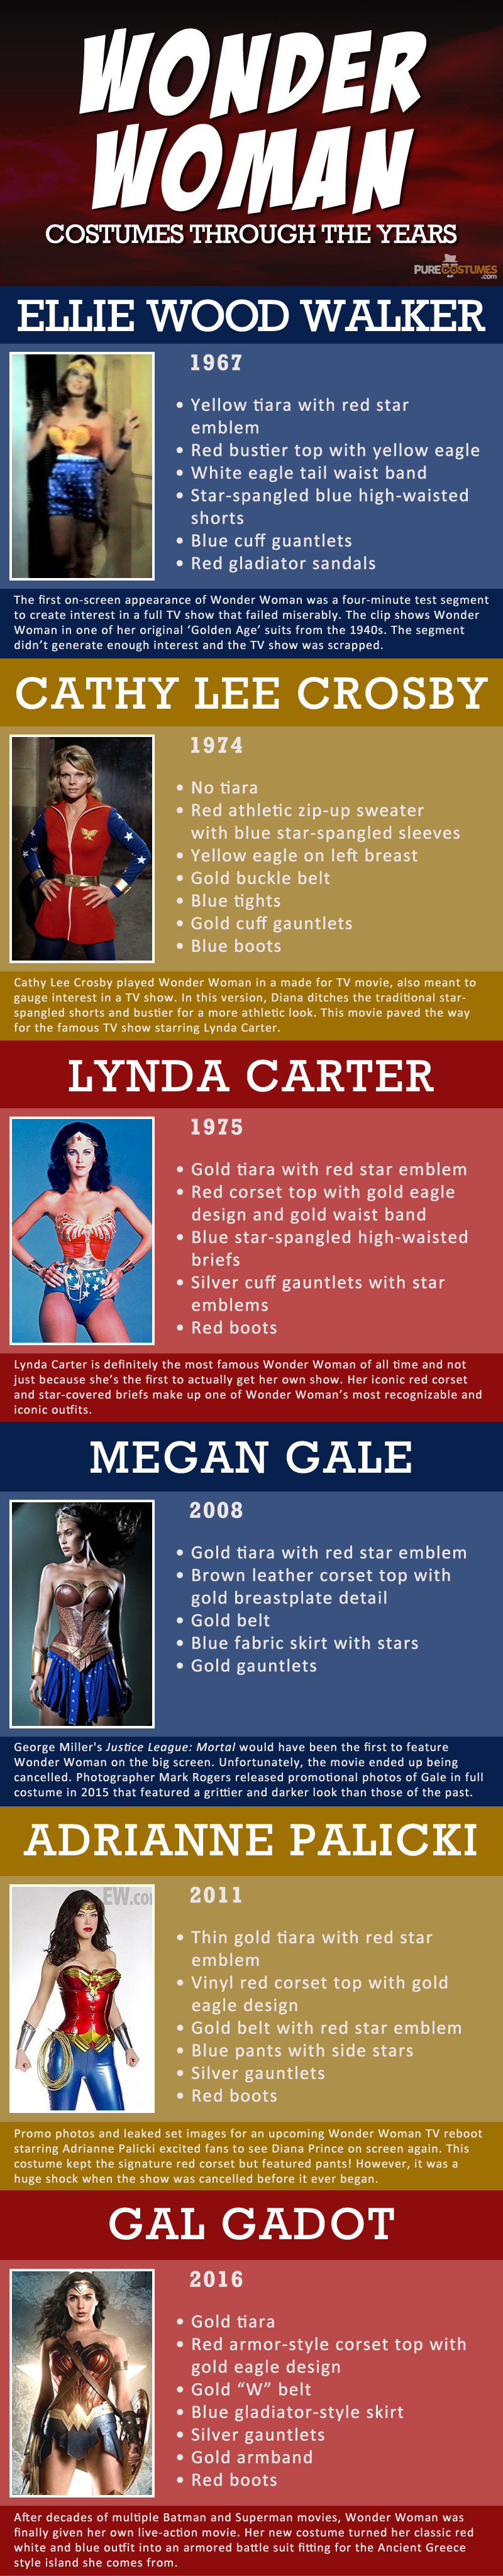 info-live-action-wonder-woman-costumes